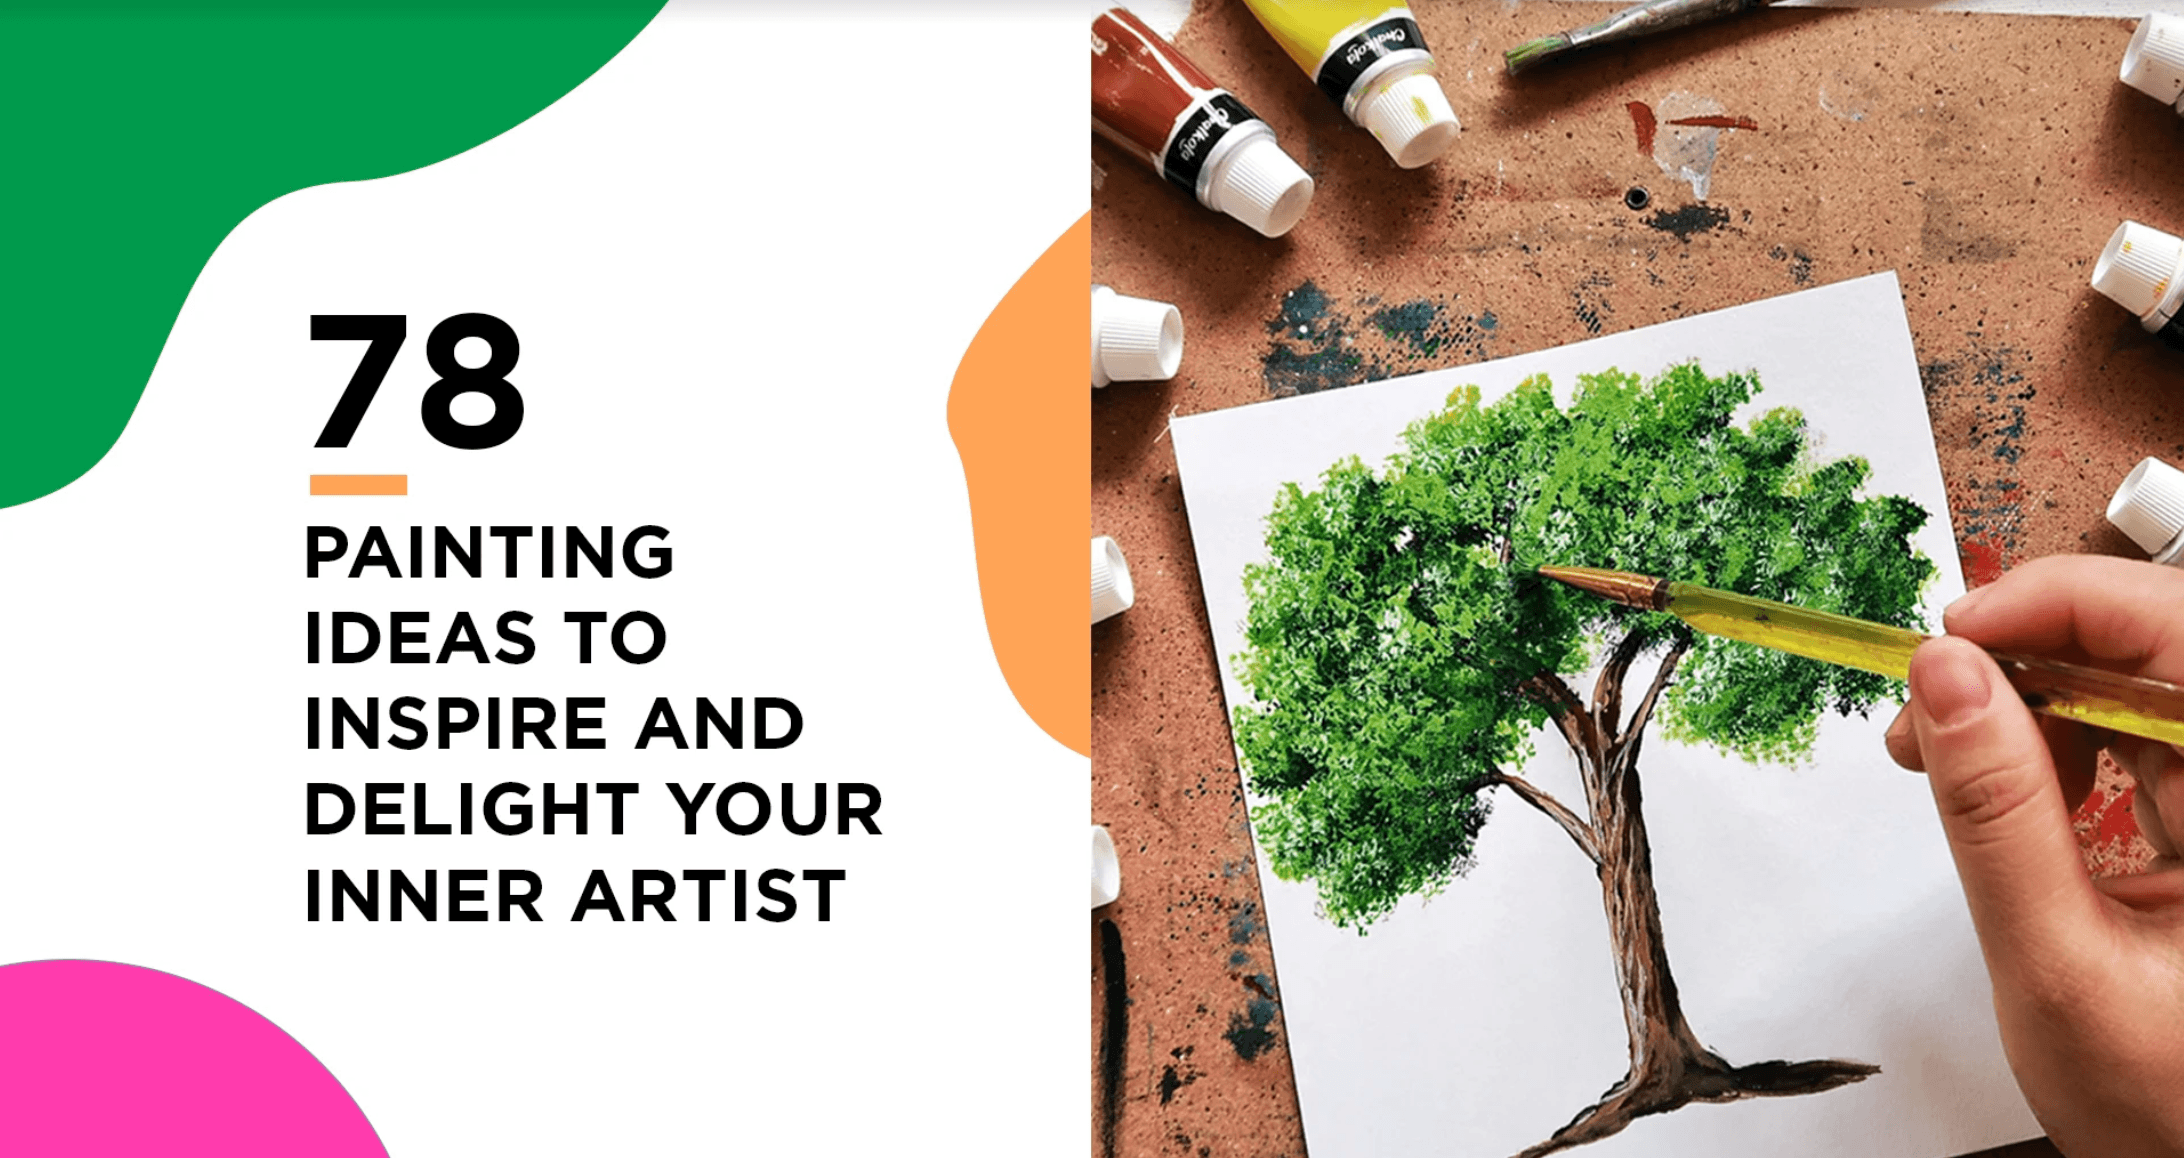 78 Painting Ideas To Inspire And Delight Your Inner Artist Chalkola Art Supply